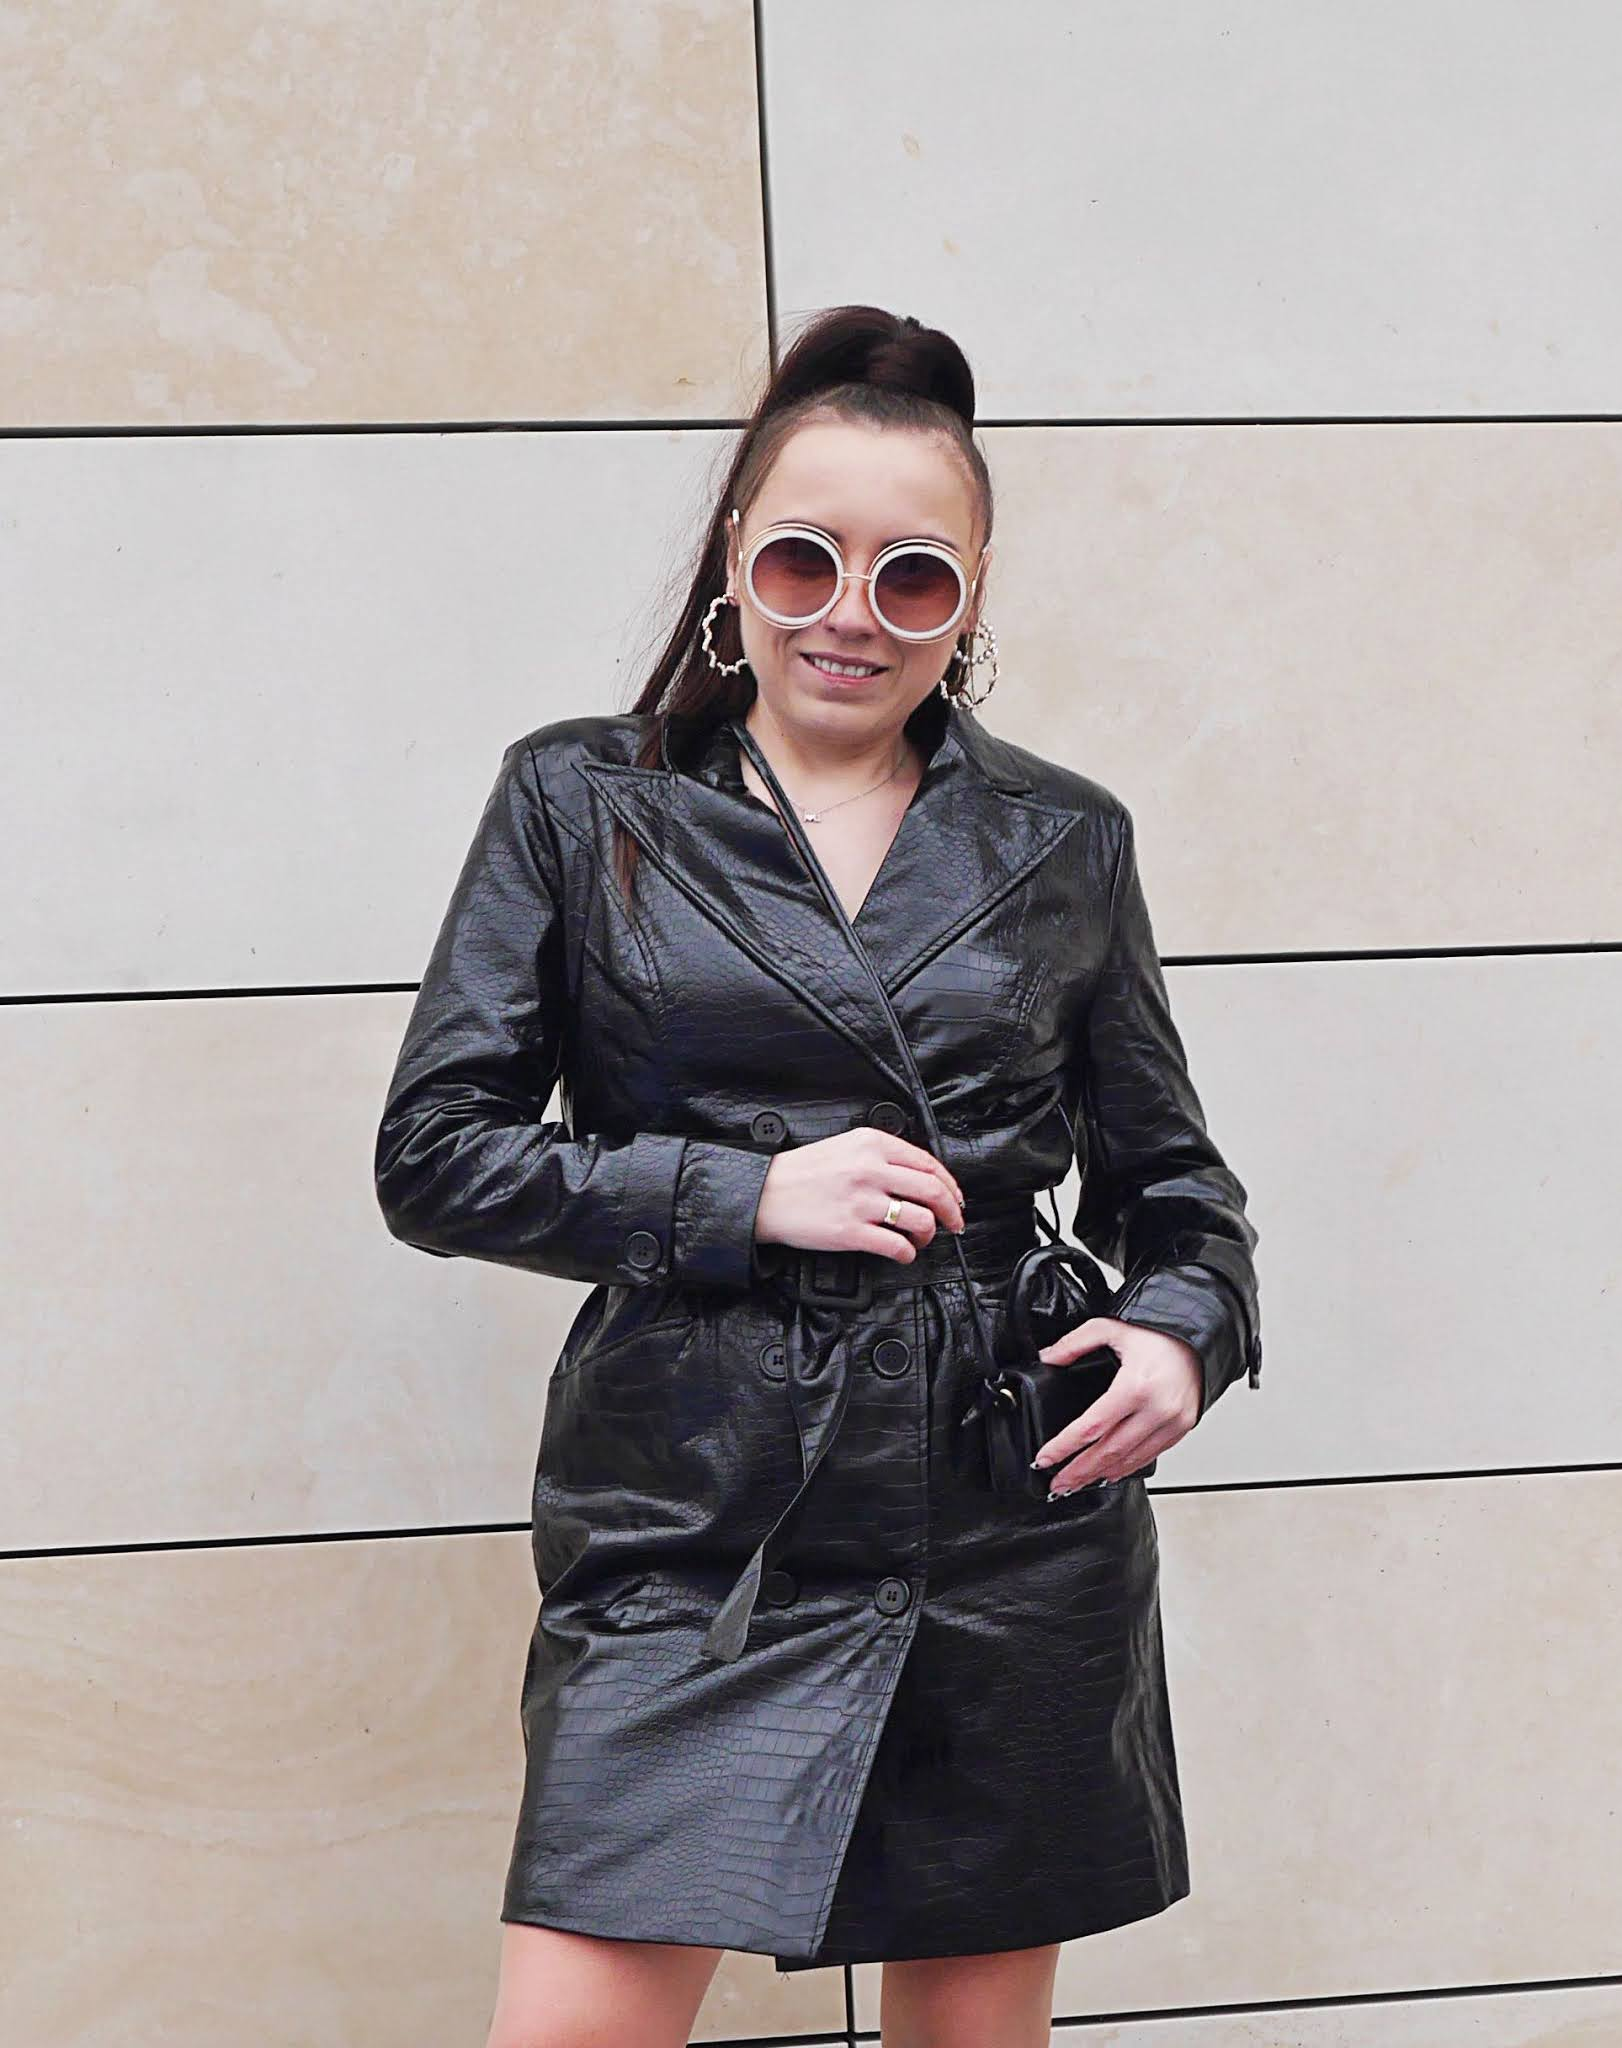 fashion blogger black leather snake print coat biker boots worker boots small bag ootd look inspiration sunglasses matrix